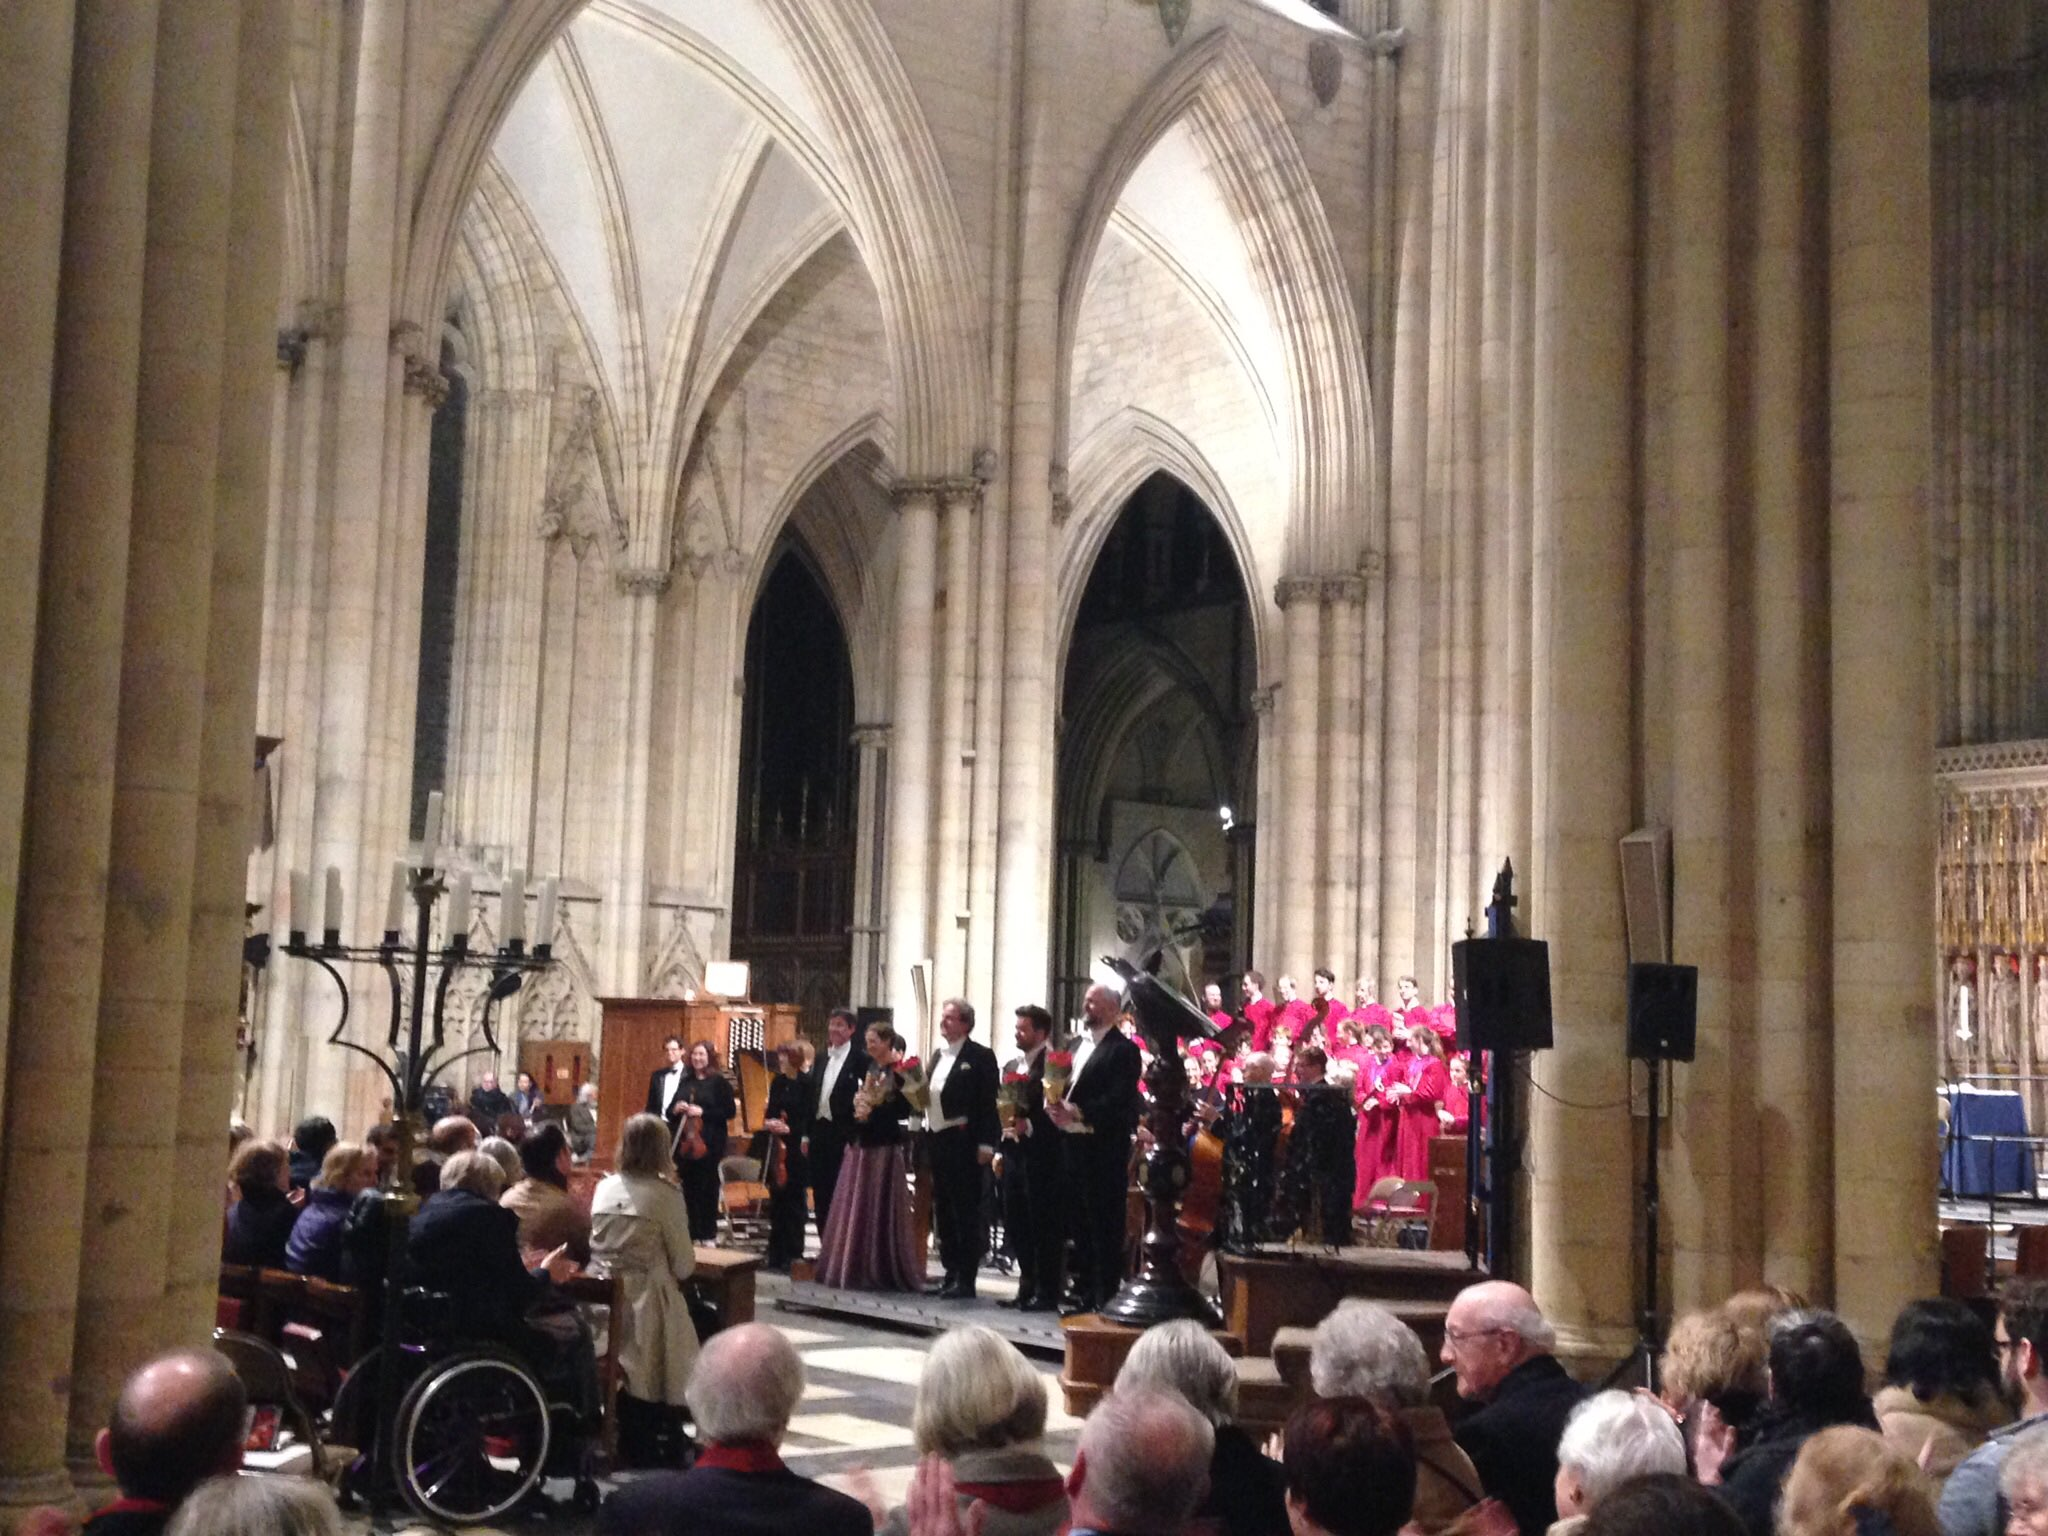 ..and into the evening with Handals Messiah attracting a record attendance at the Minster.